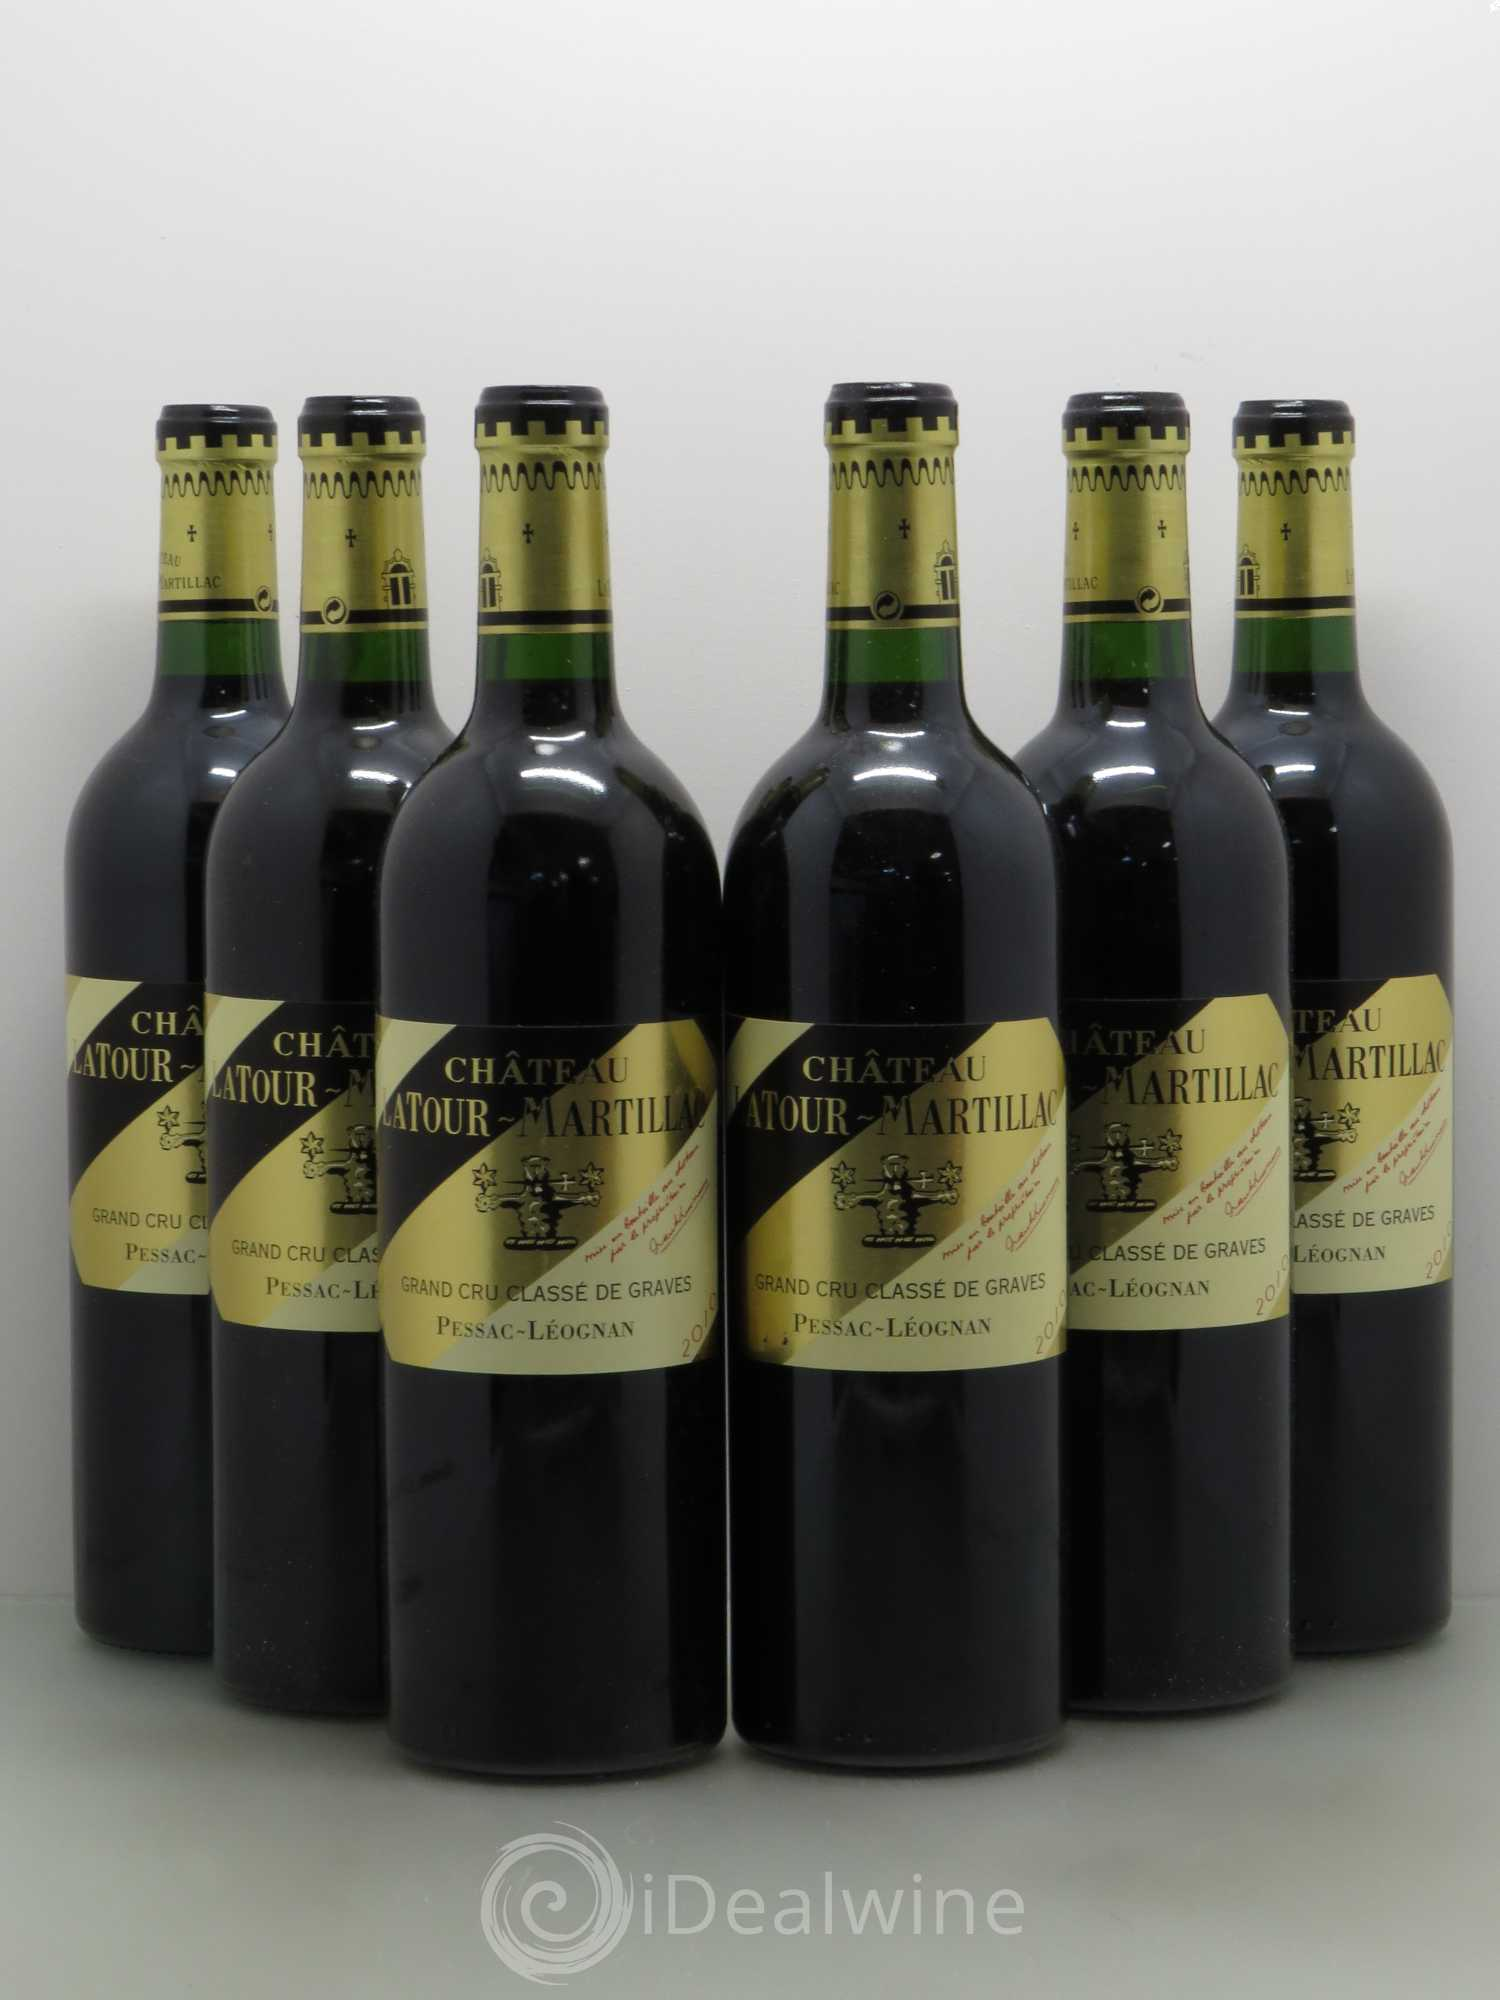 acheter ch teau latour martillac cru class de graves 2010 lot 12544. Black Bedroom Furniture Sets. Home Design Ideas